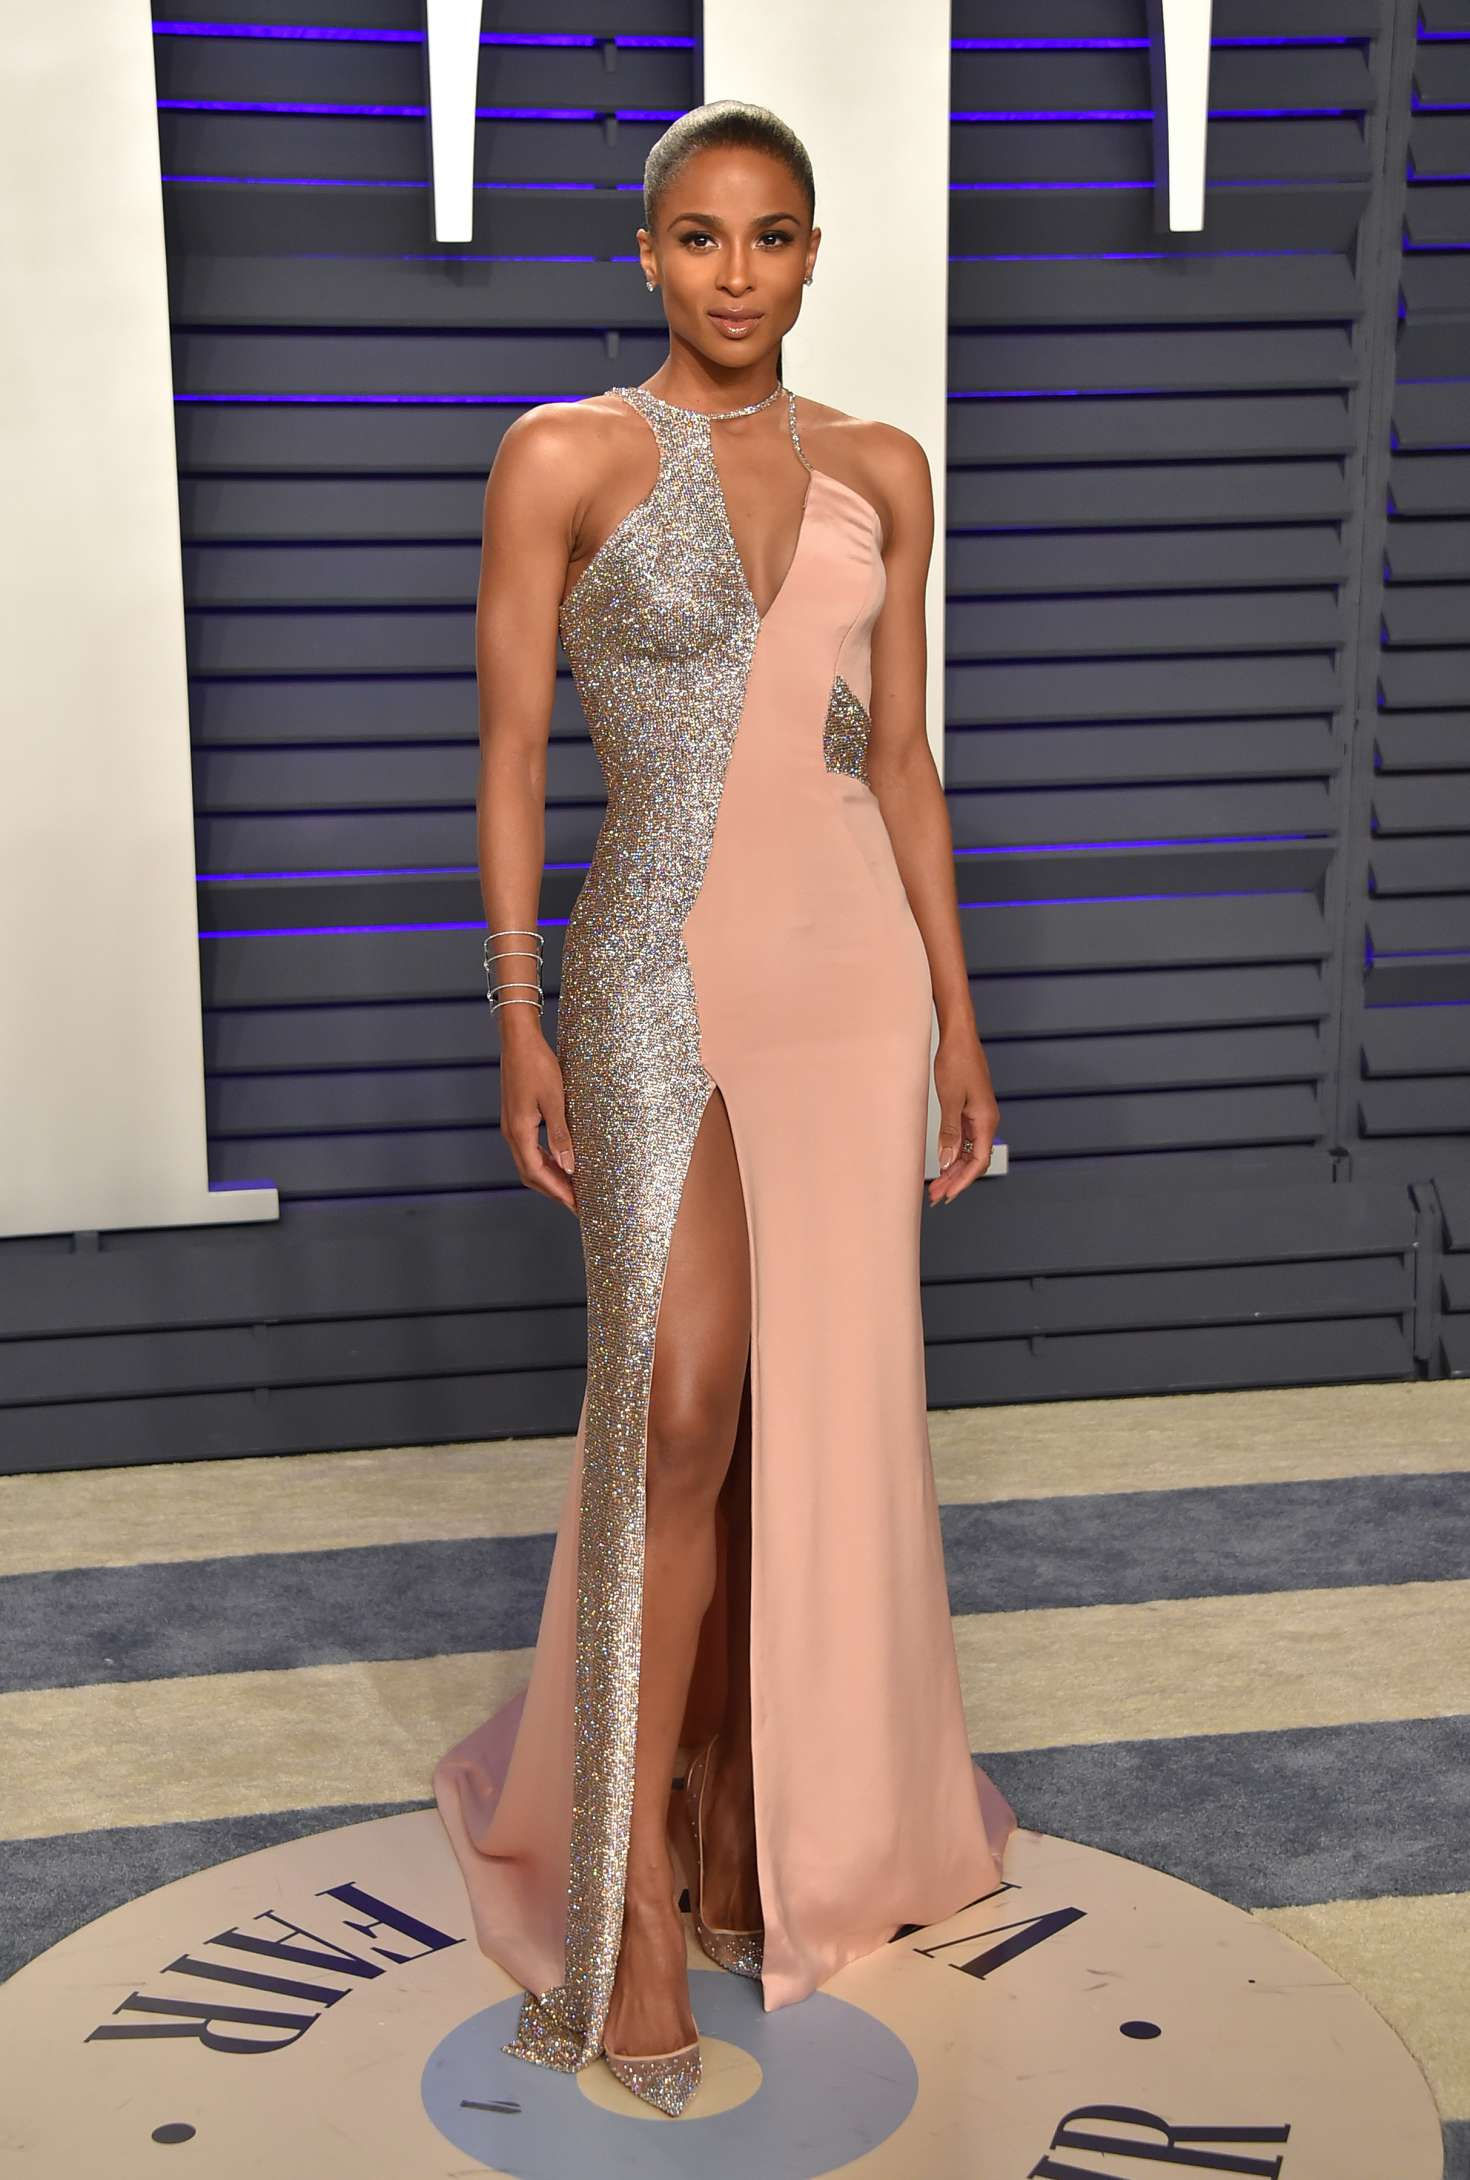 Ciara In Instyle Magazine April 2019 Issue: 2019 Vanity Fair Oscar Party In Beverly Hills